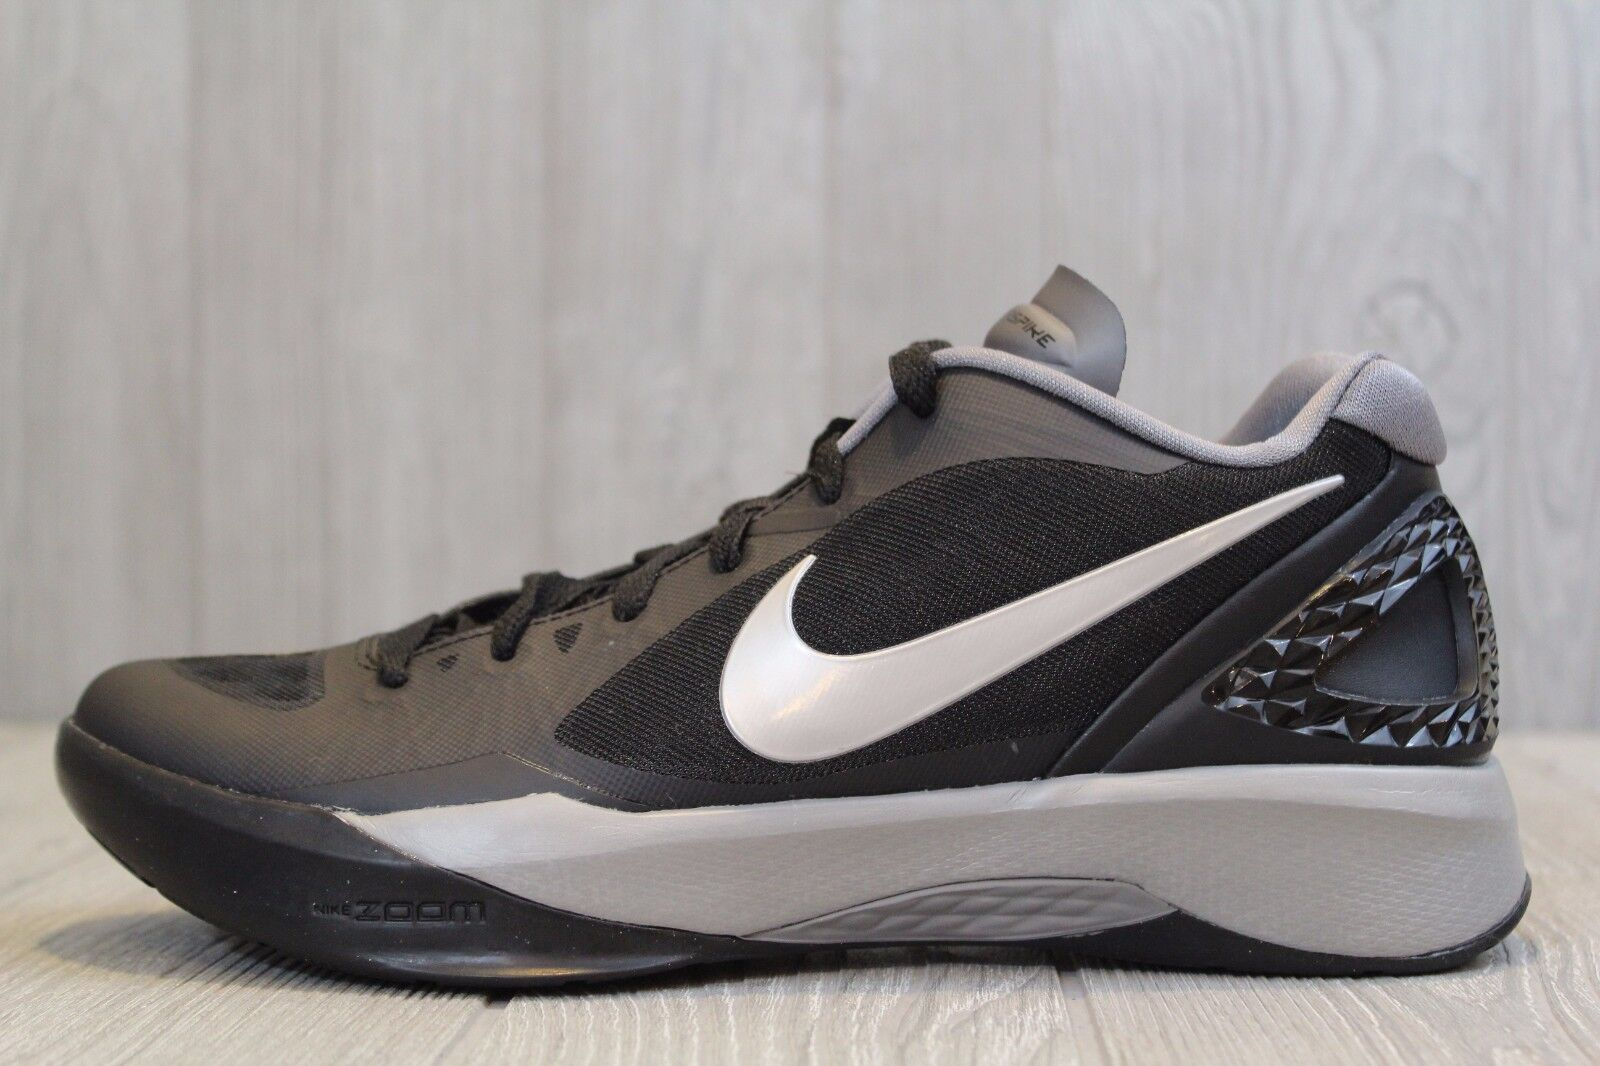 3af8112bf897 20 New Womens Nike Zoom Volley Volley Volley Hyperspike Volleyball Shoes  585763 001 Sz 8.5-13 248b7e